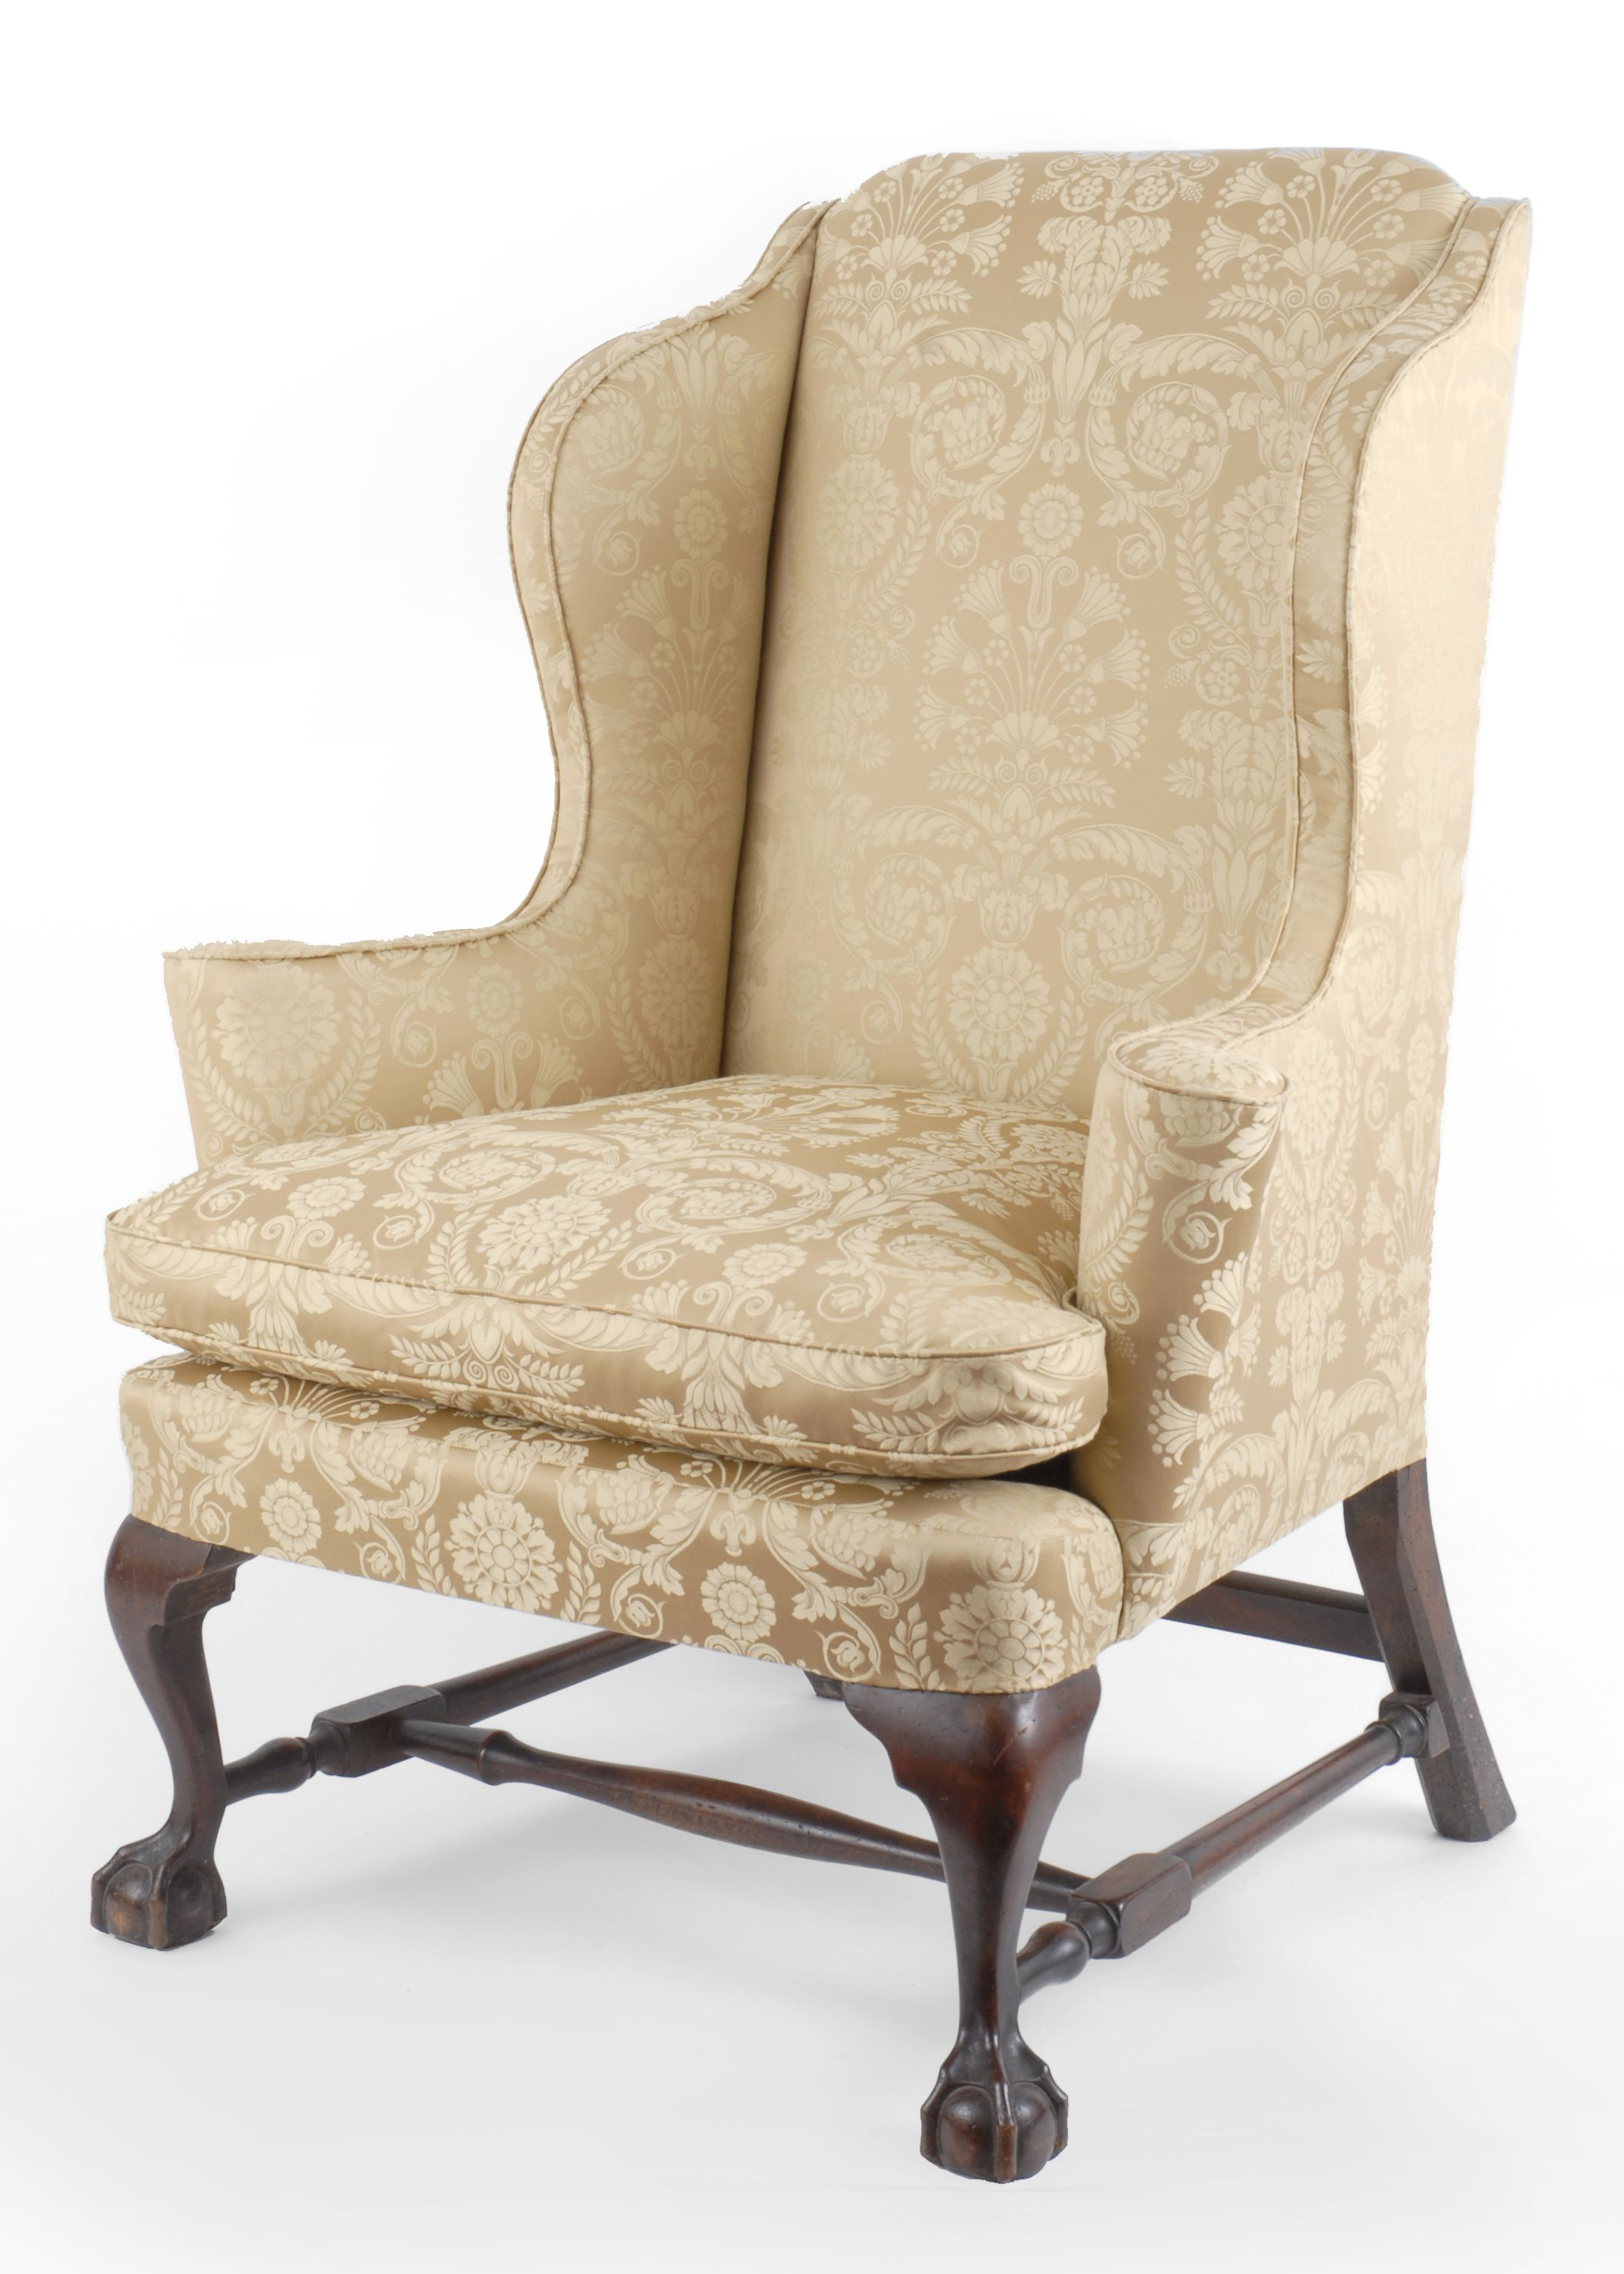 Antique Wingback Chair Google Search Vintage Wingback Chair